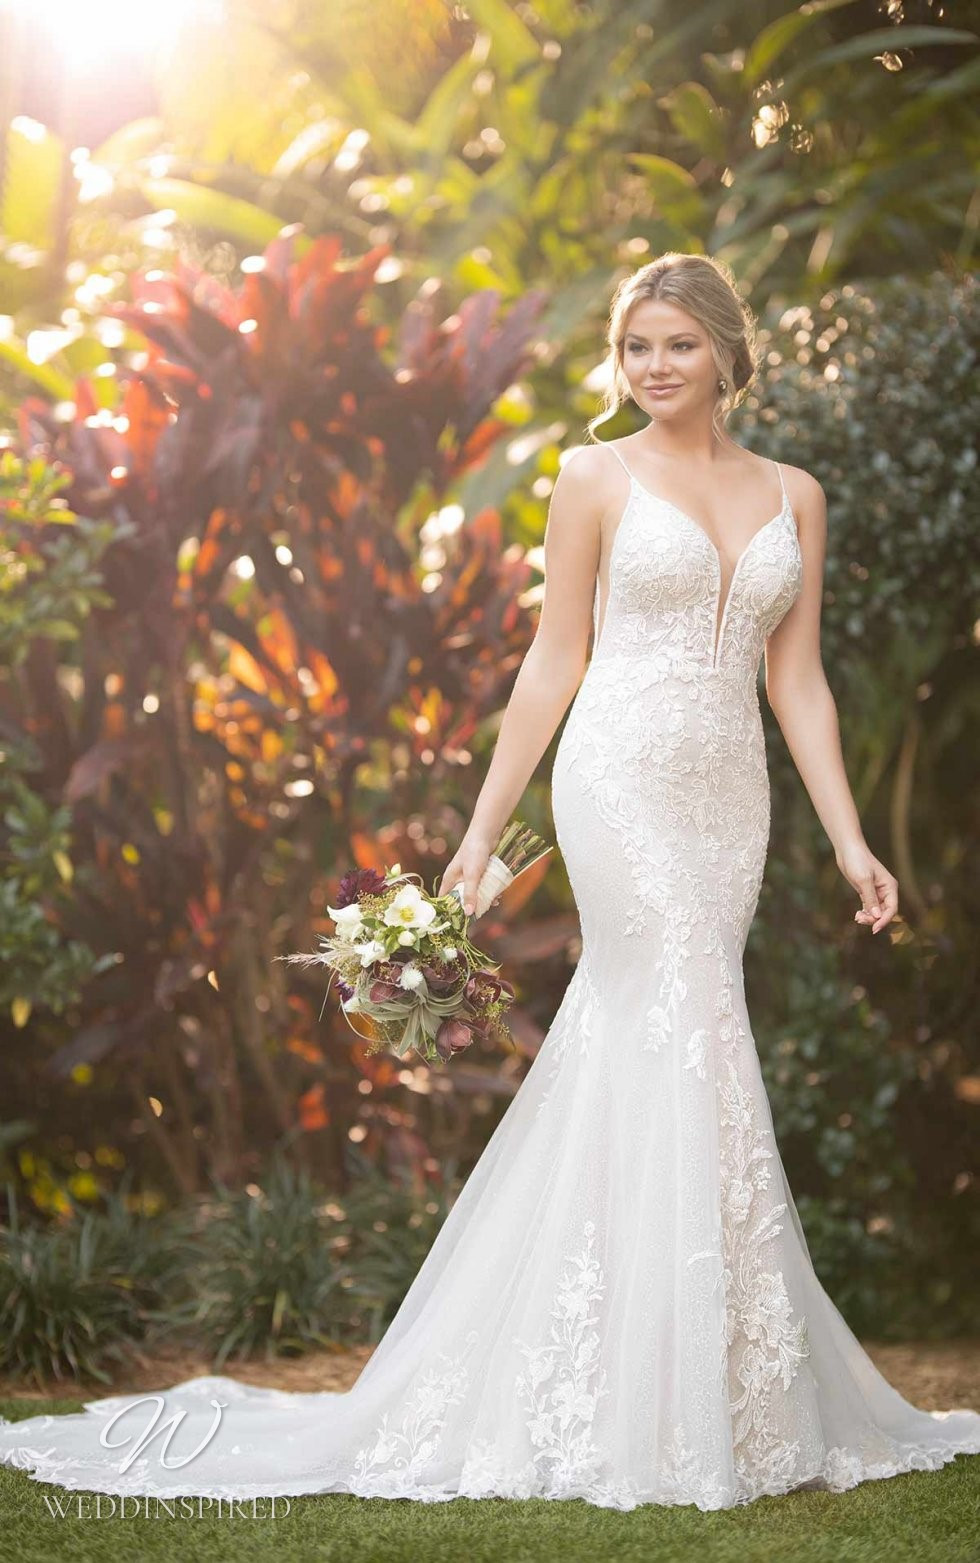 An Essense of Australia lace and mesh mermaid wedding dress with a train